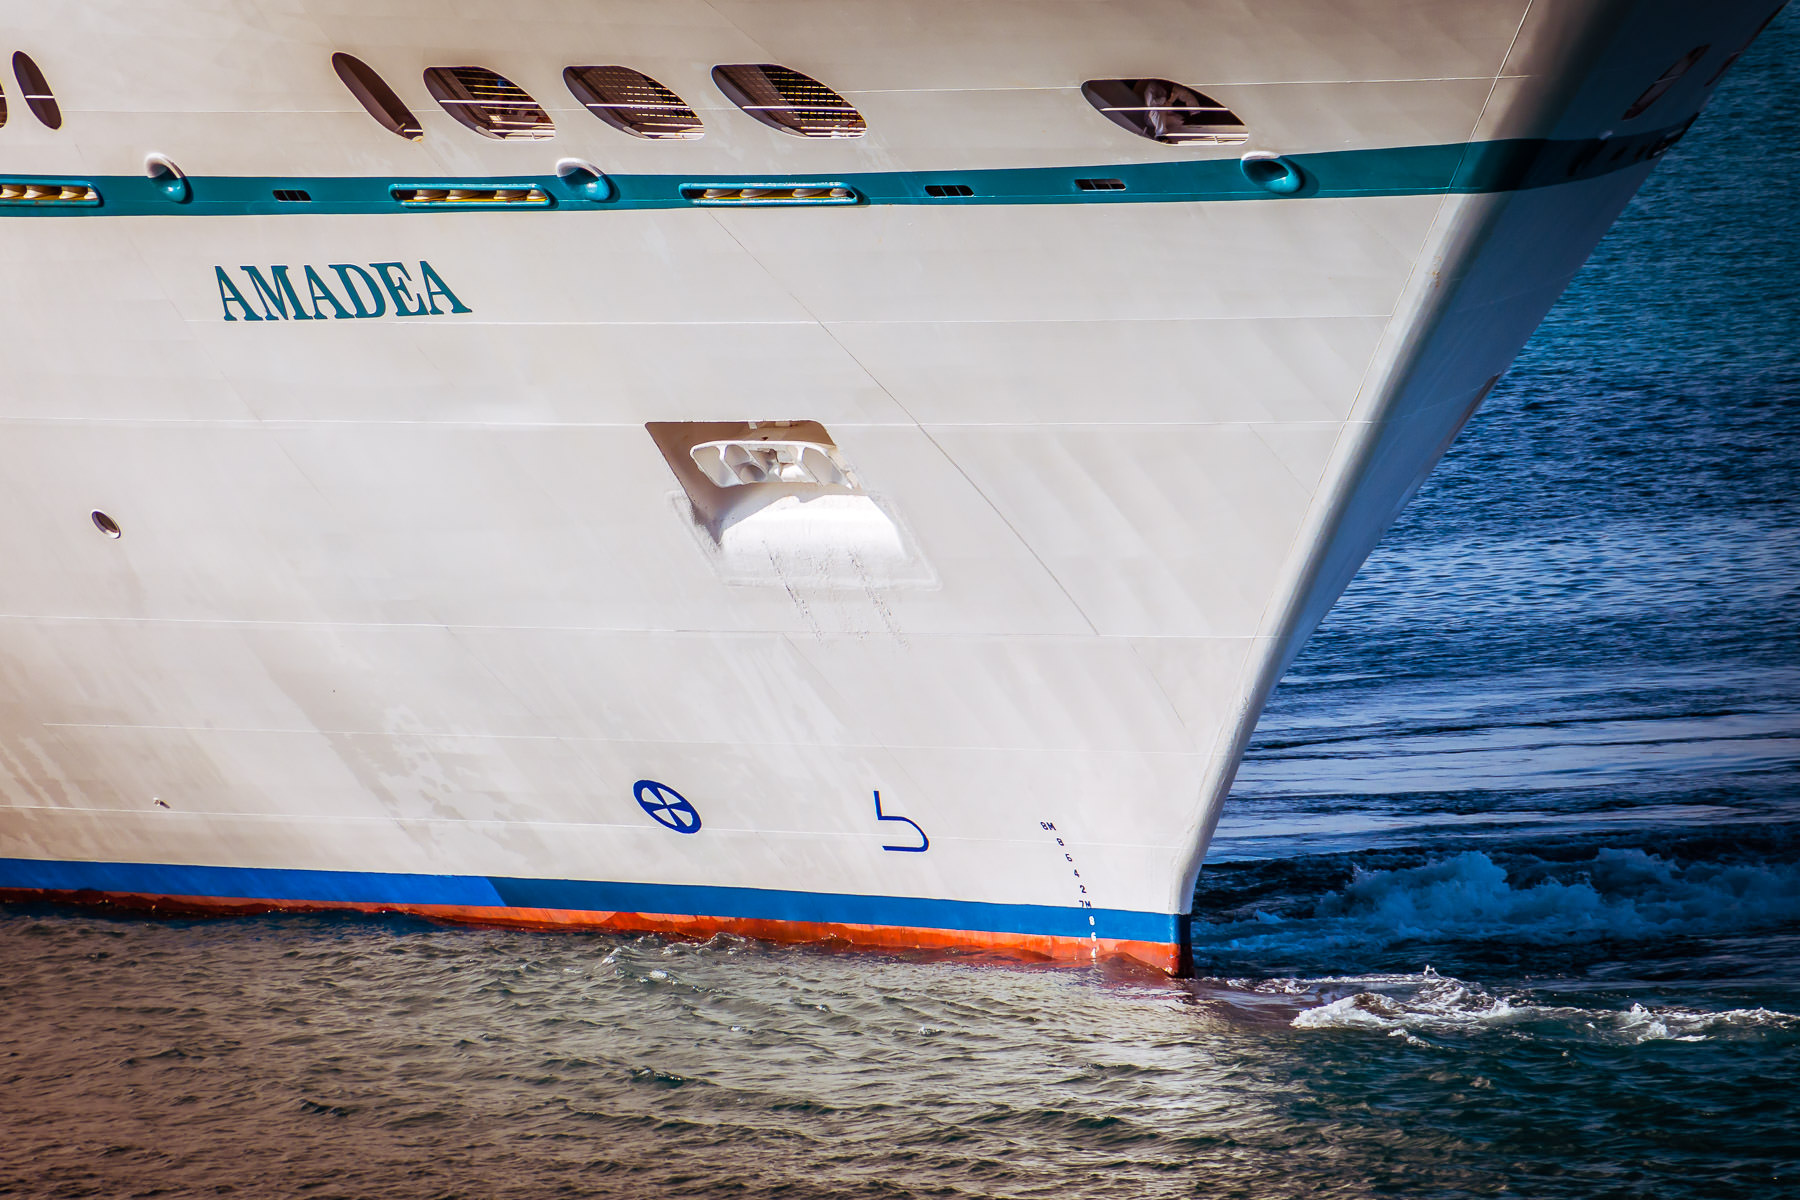 The bow of the cruise shipAmadea cuts through the water as she begins to depart Freeport, Bahamas.